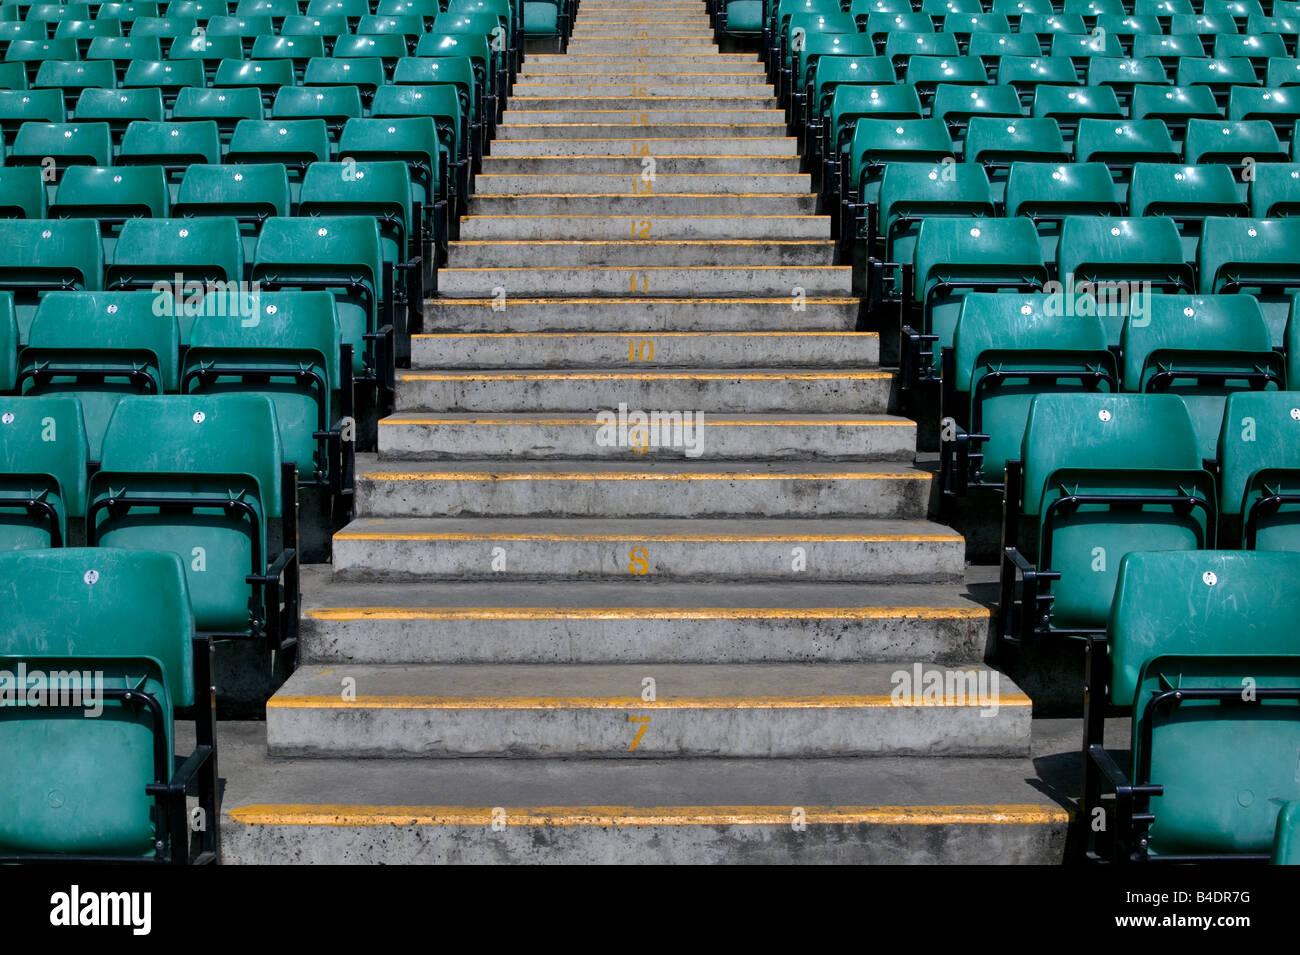 Numbered steps in a sports stadium in between the green pastic seating - Stock Image